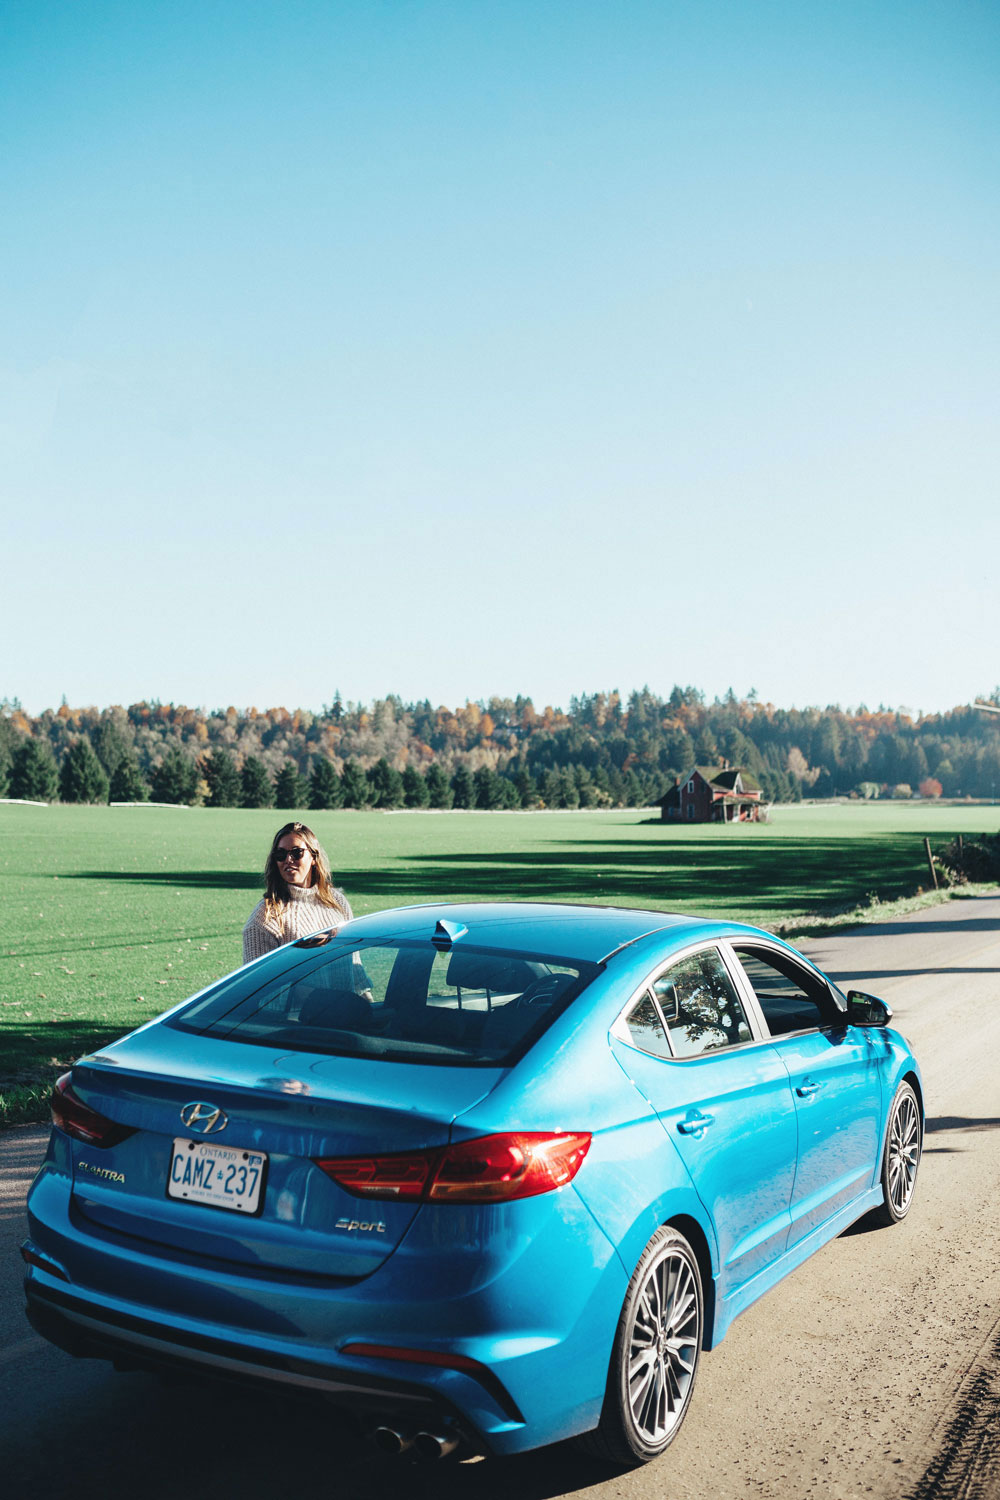 Hyundai canada review by To Vogue or Bust